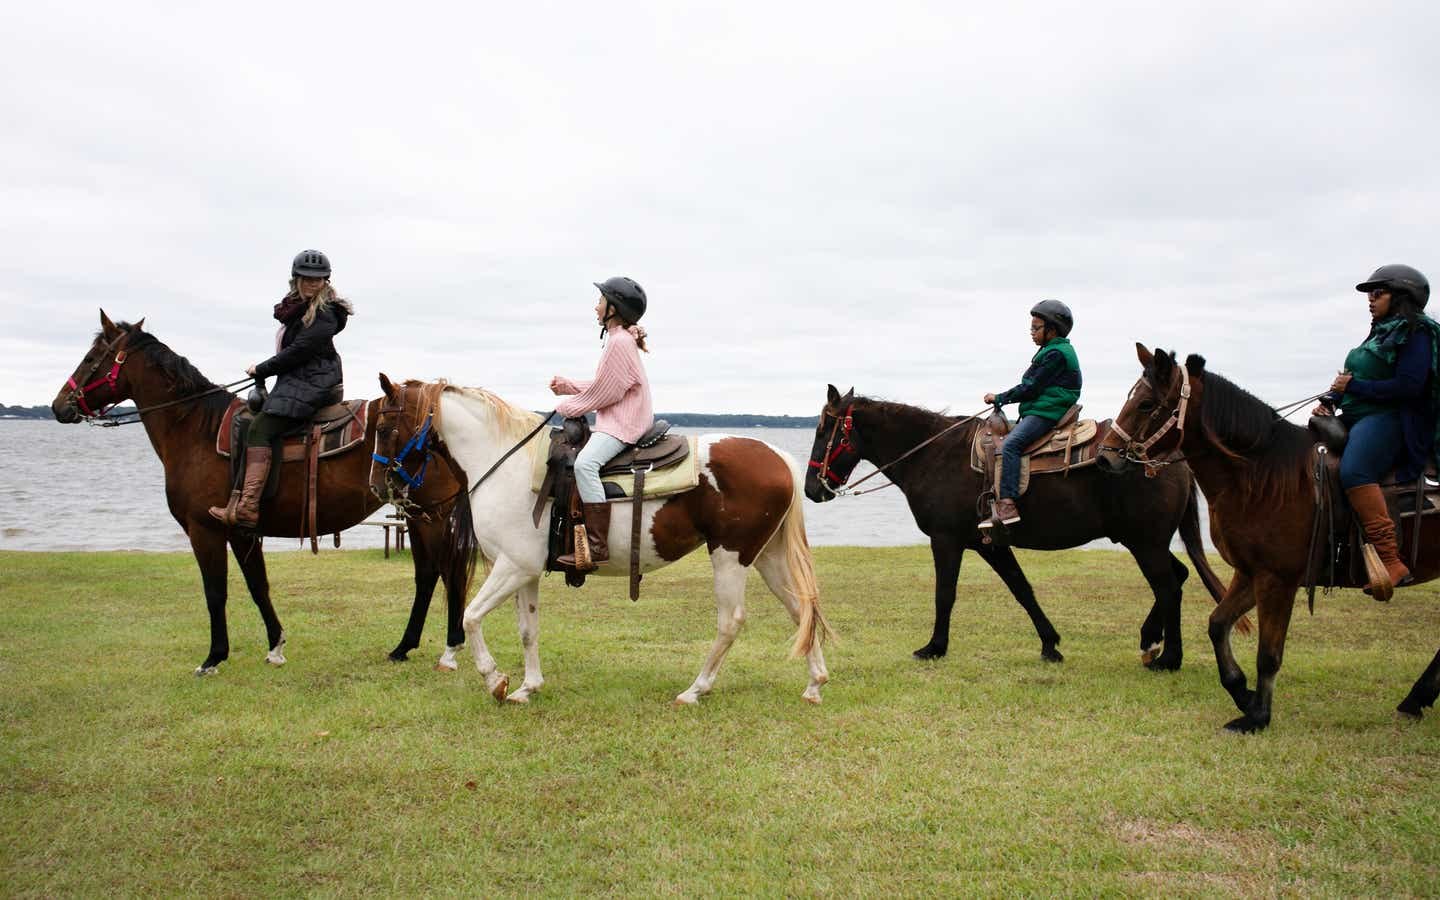 Group of three people riding horses at Villages Resort in Flint, Texas.